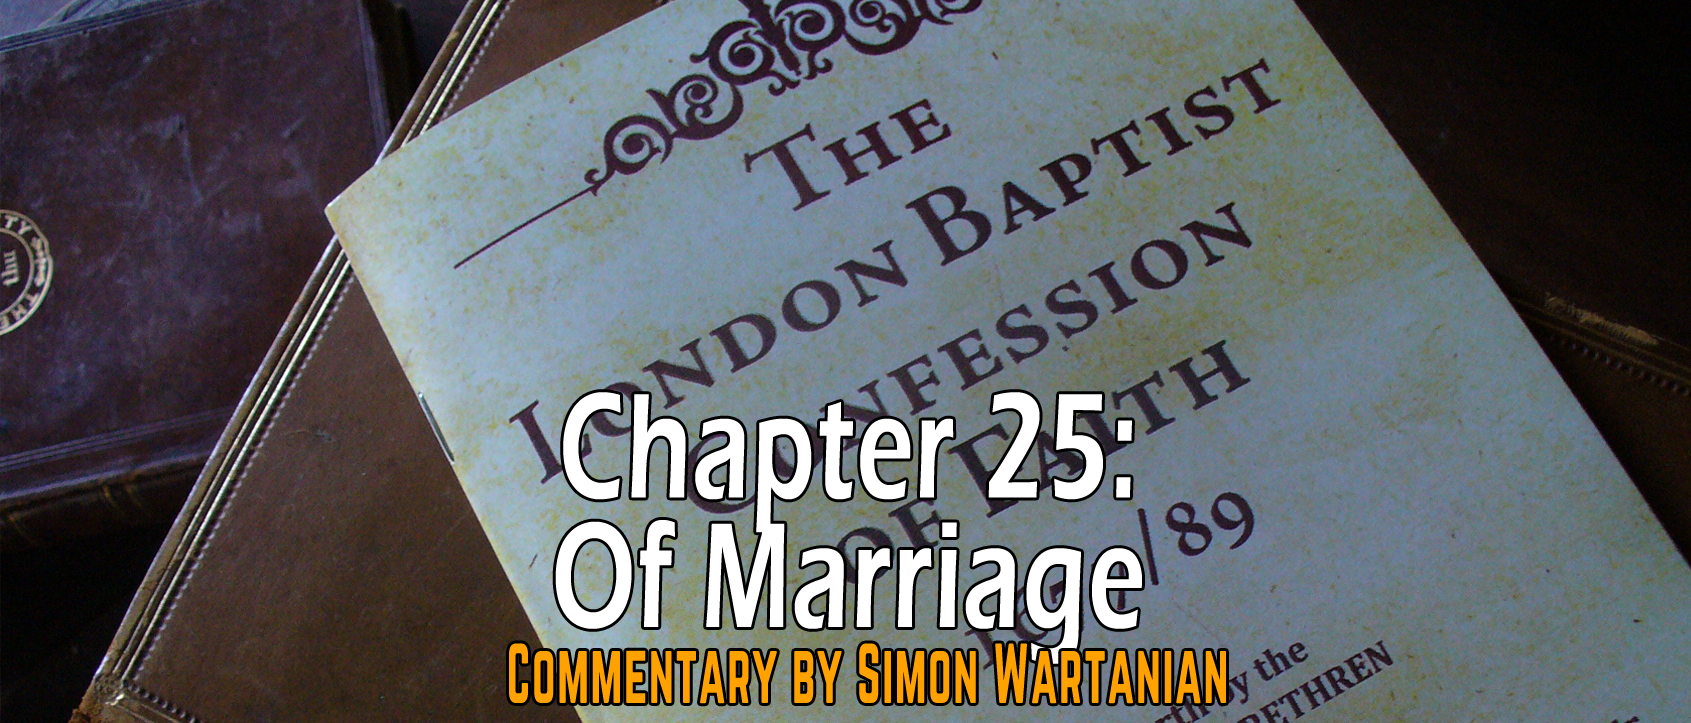 1689 Baptist Confession Chapter 25: Of Marriage - Commentary